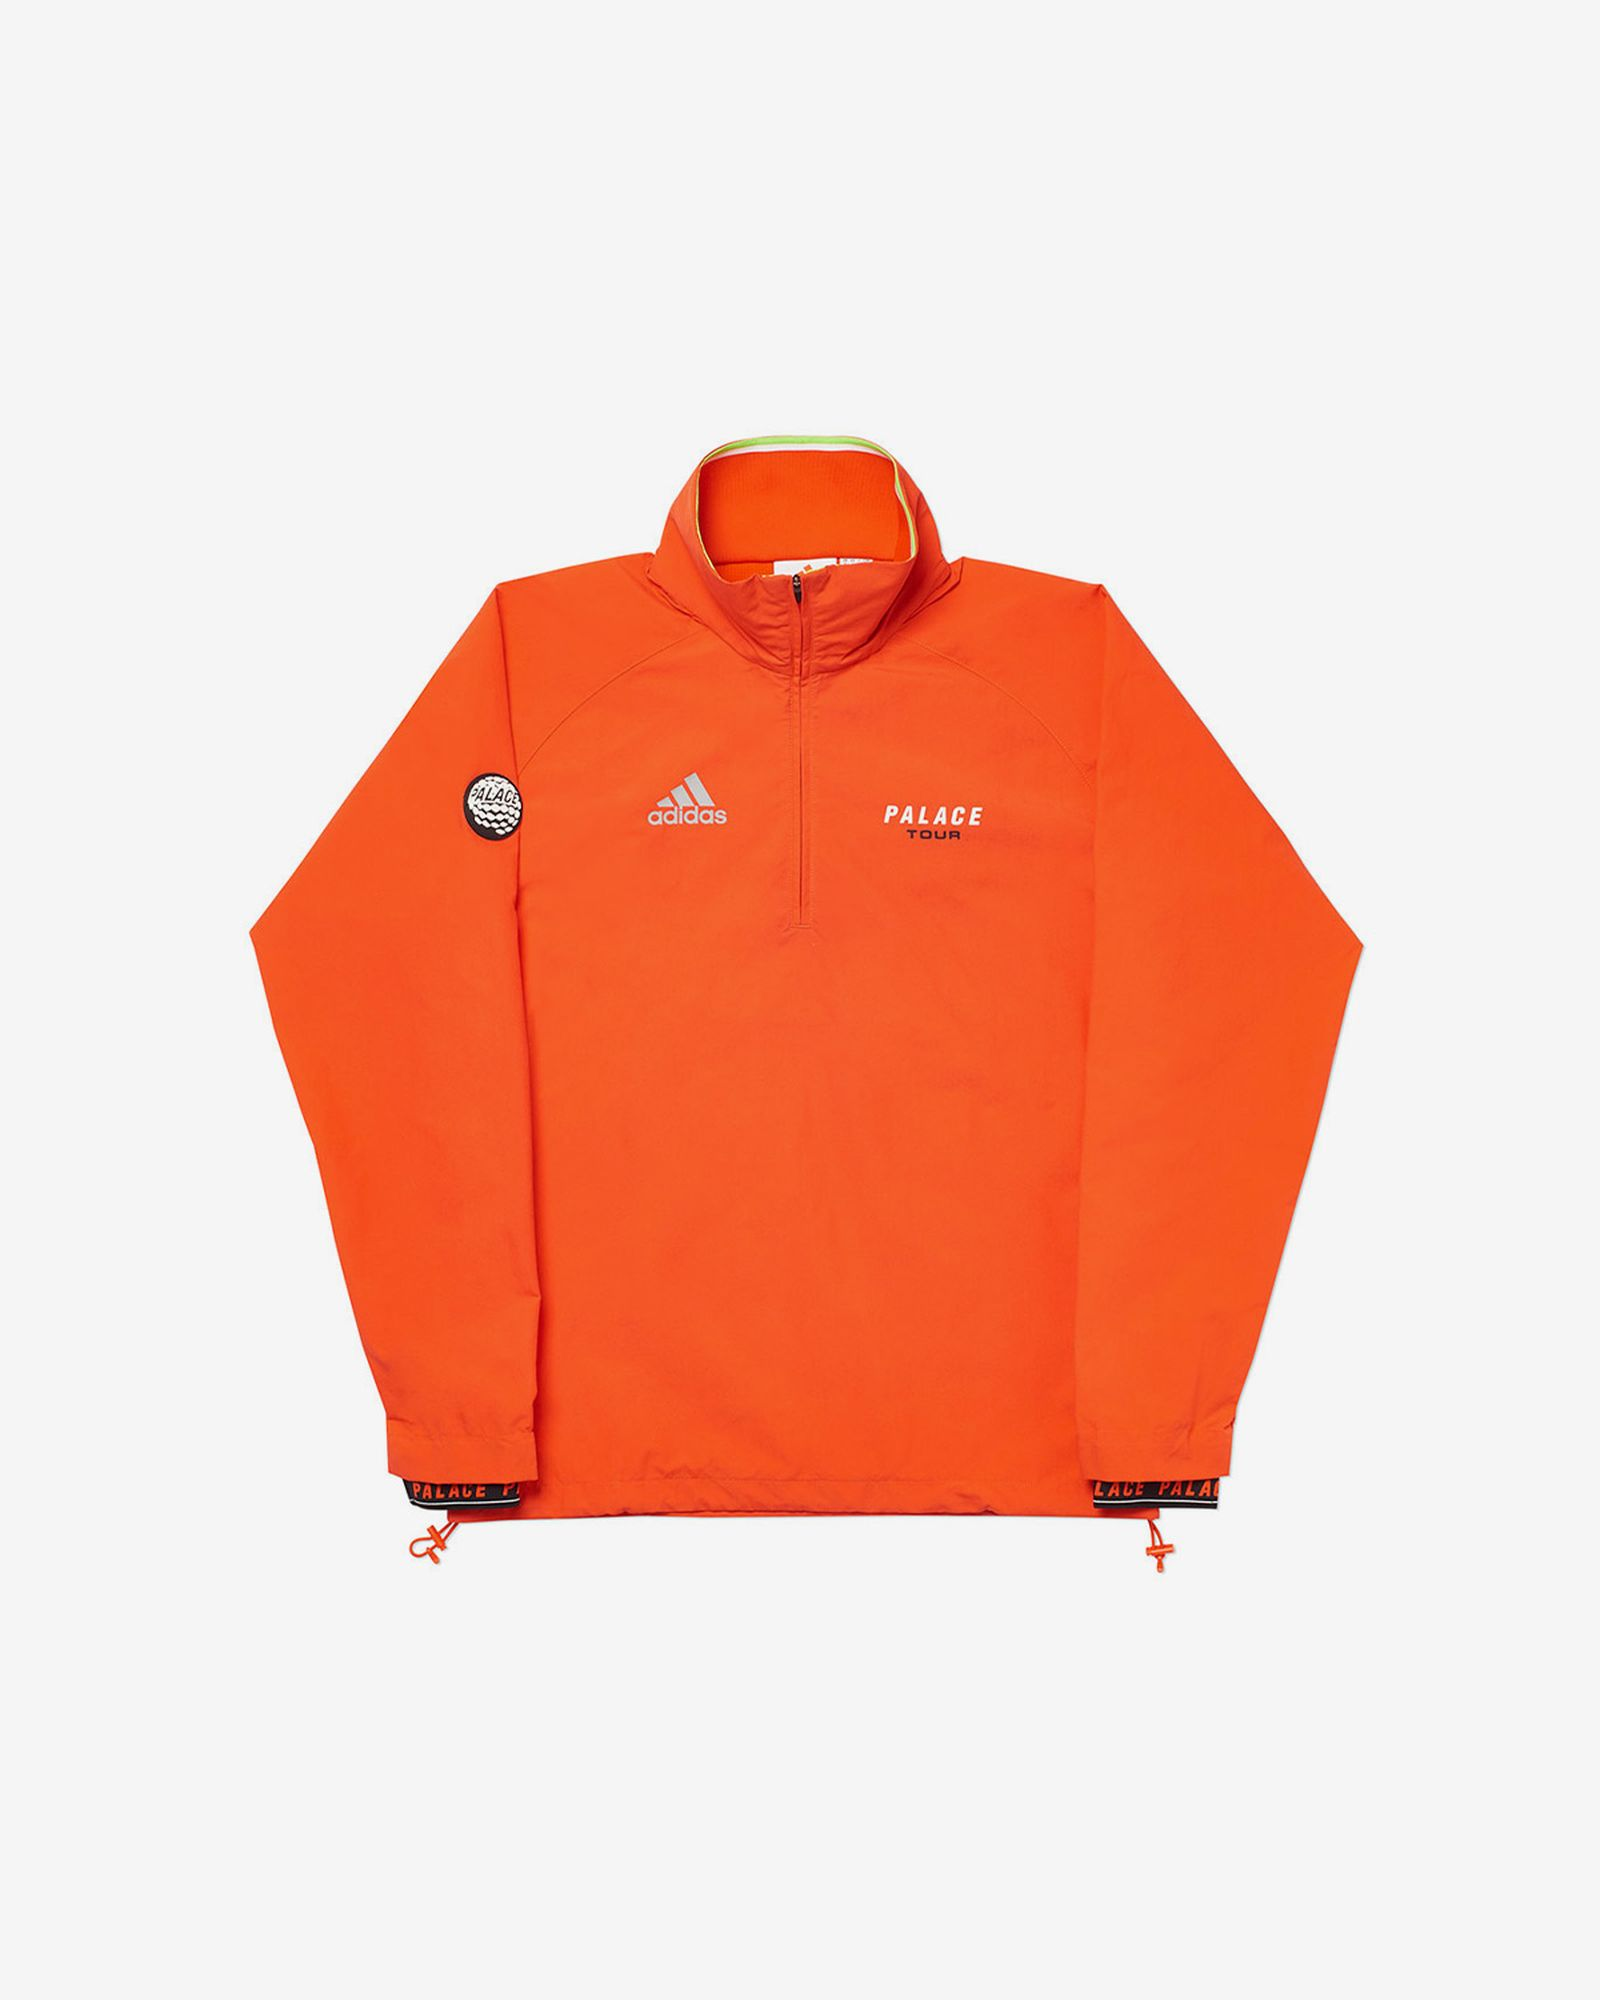 palace-adidas-golf-collaboration-official-look-07